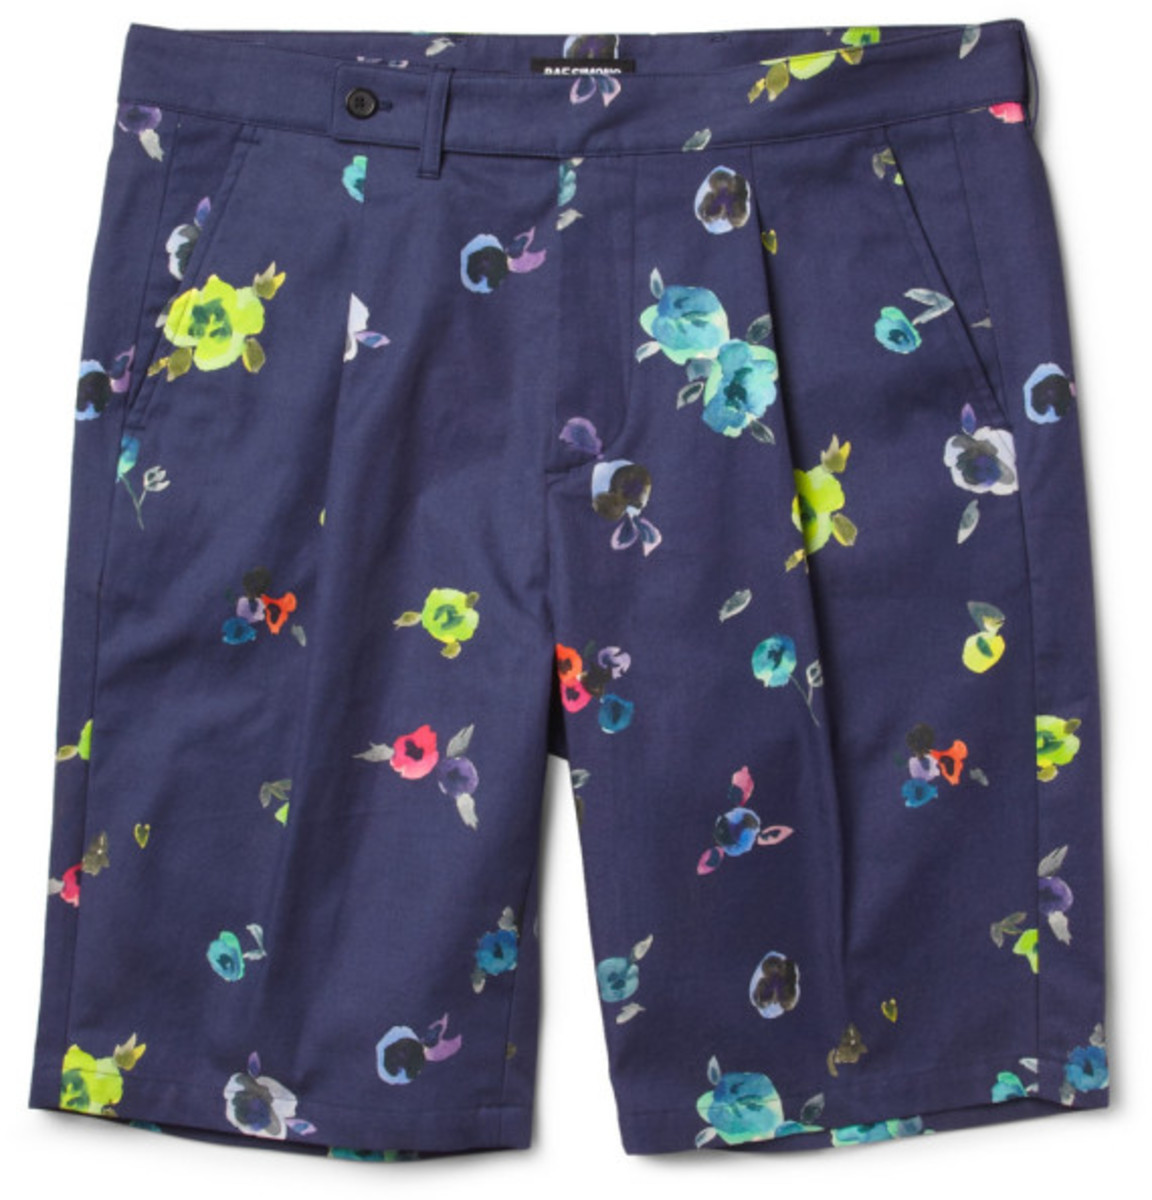 raf-simons-mr-porter-exclusive-flower-print-cotton-twill-shorts-01